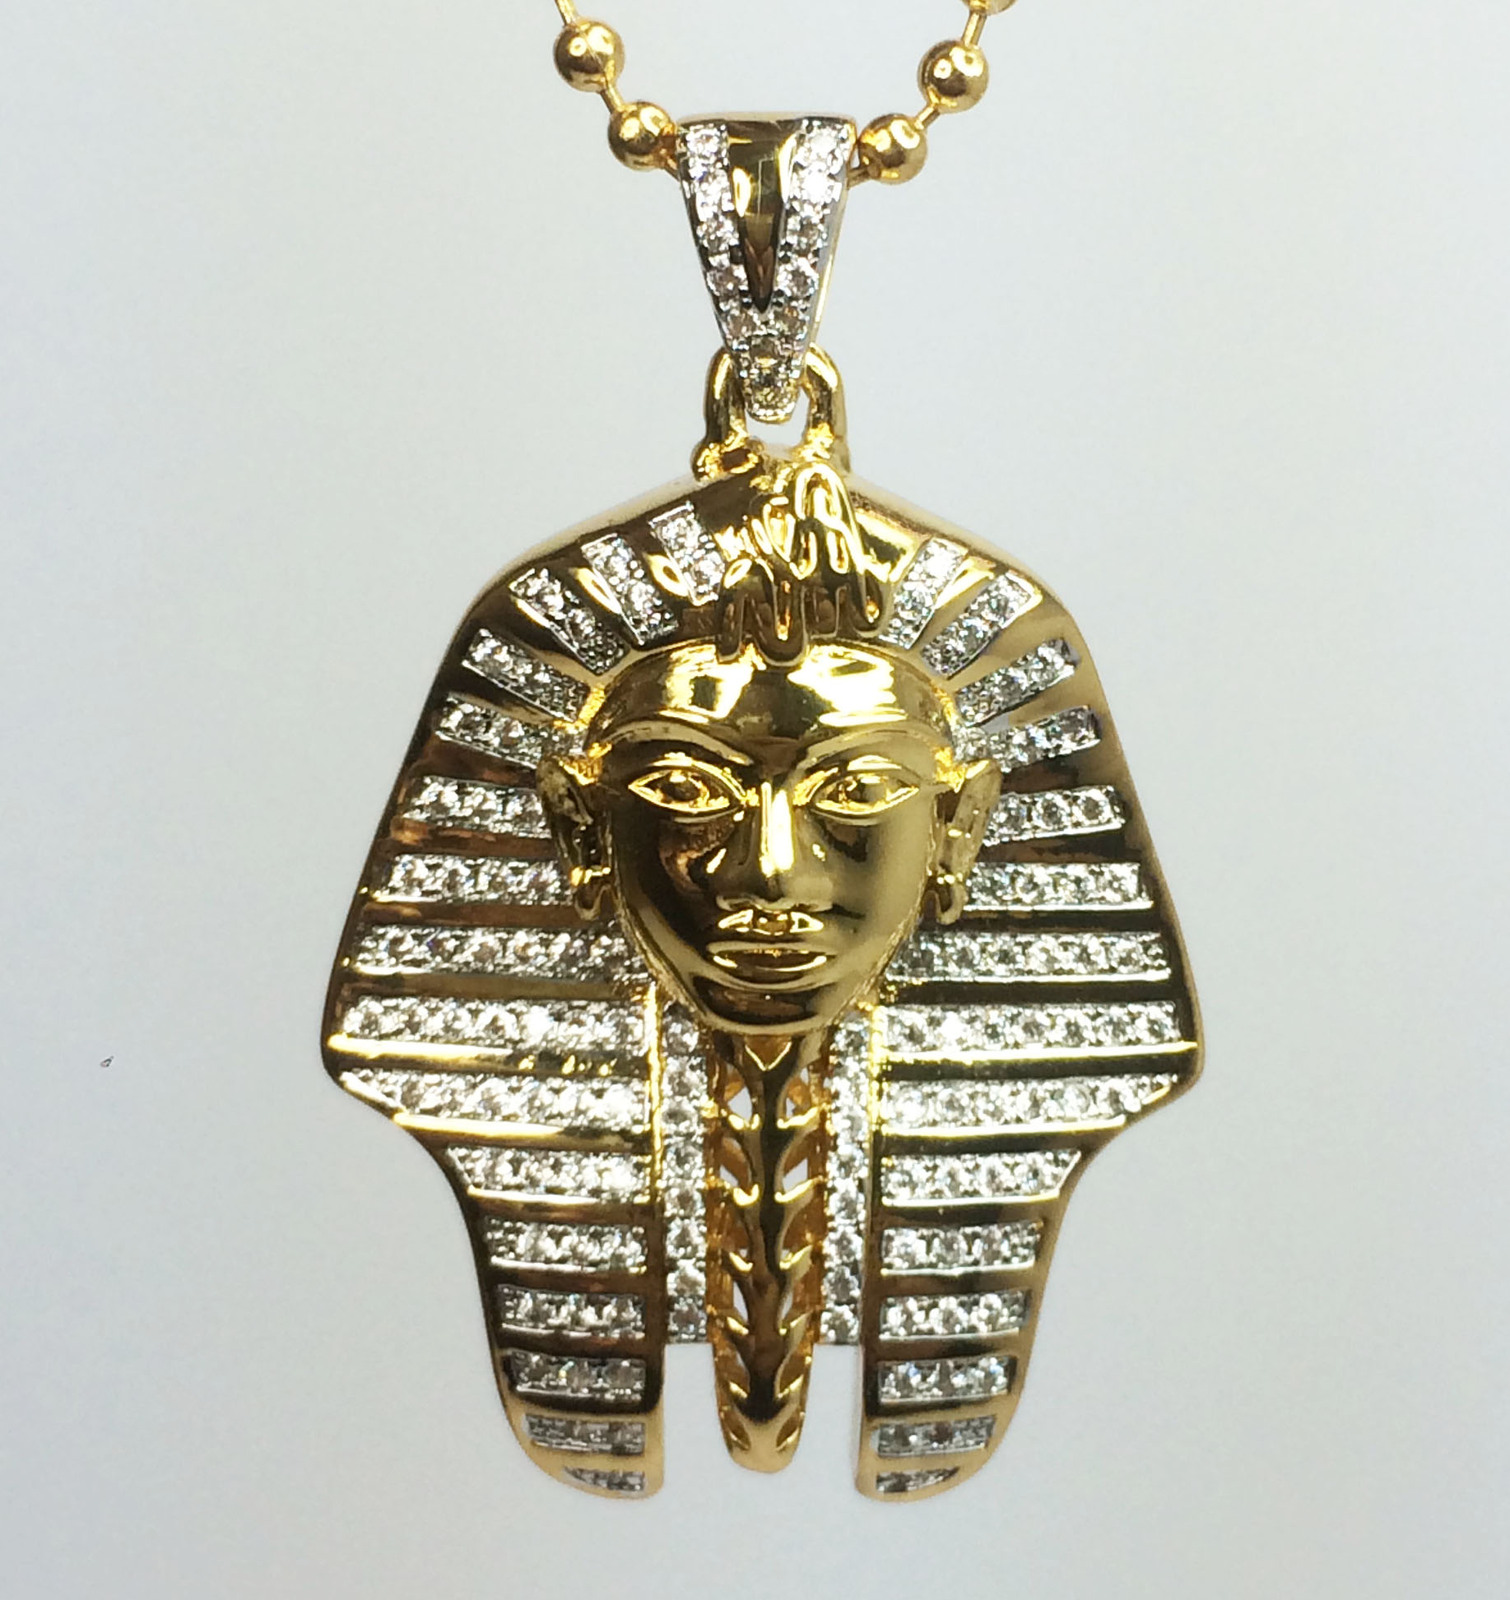 Egyptian pharaoh king tut pendant and bead and 50 similar items photo 5 9 photo 5 9 egyptian pharaoh king tut pendant aloadofball Gallery